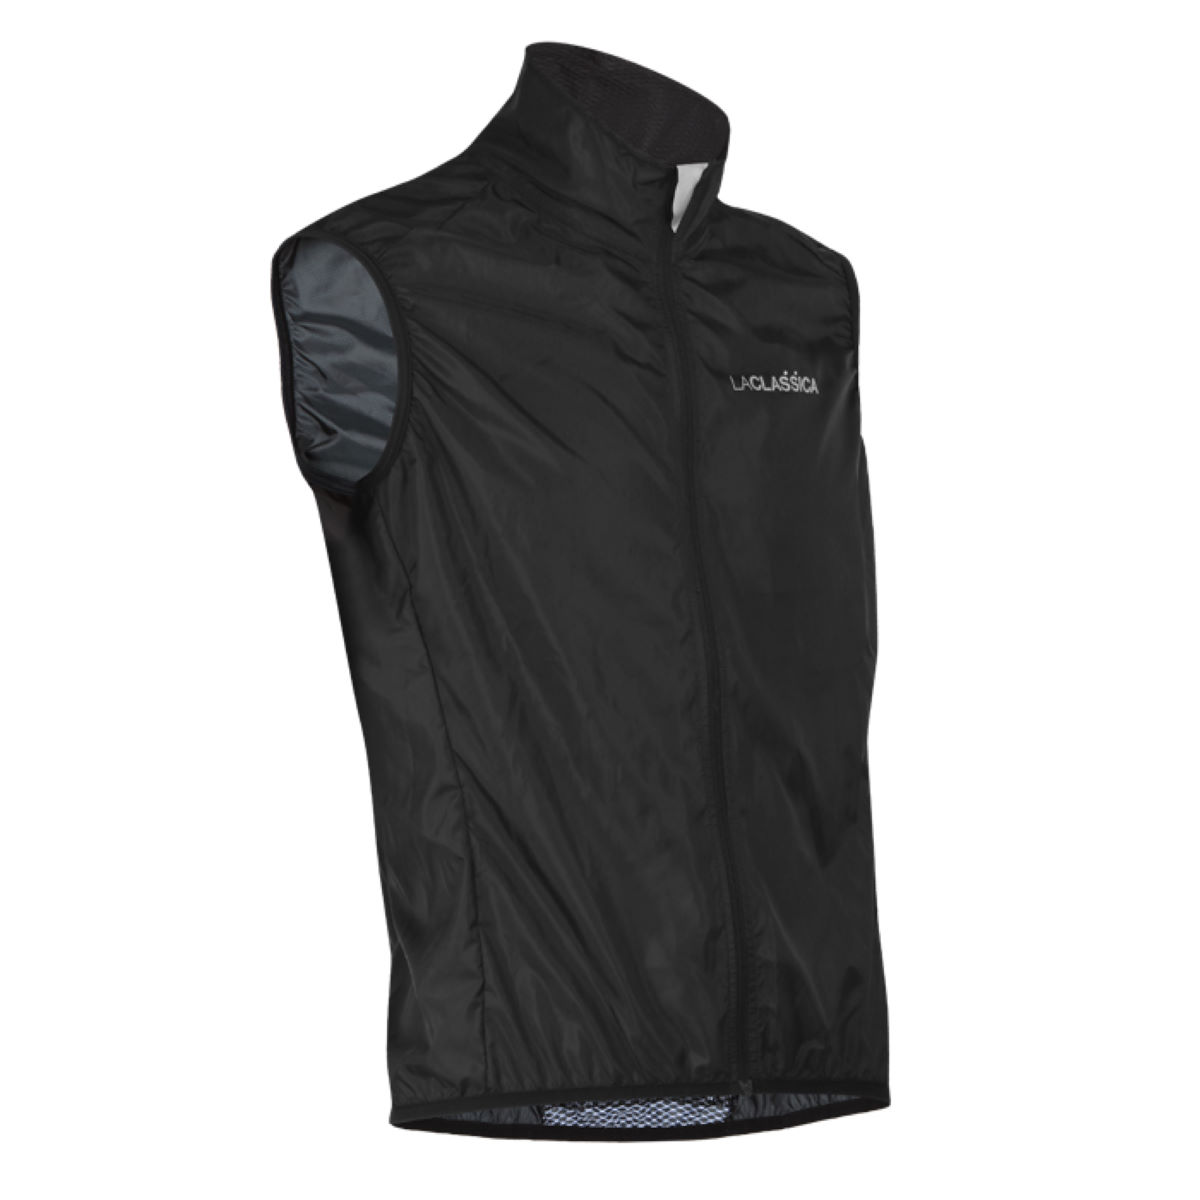 Gilet coupe-vent LaClassica (sans manches) - S Snake